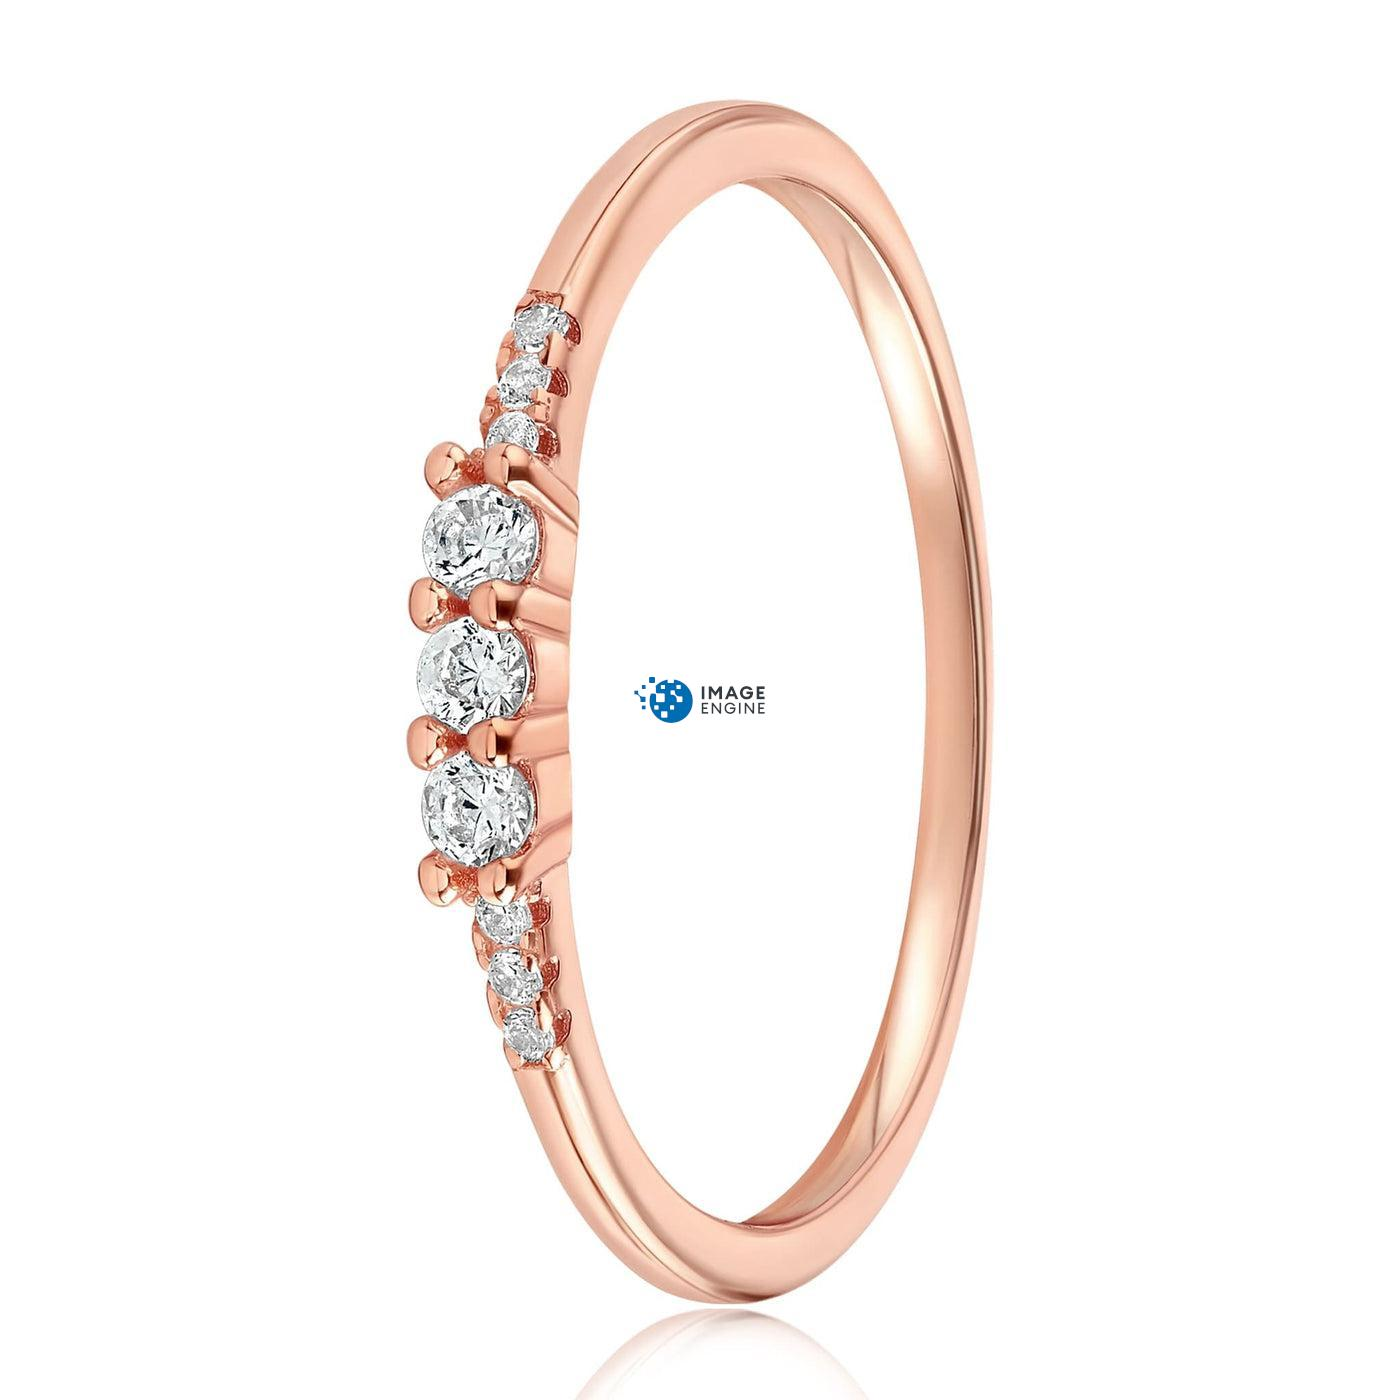 Emie Ring - Side View - 18K Rose Gold Vermeil